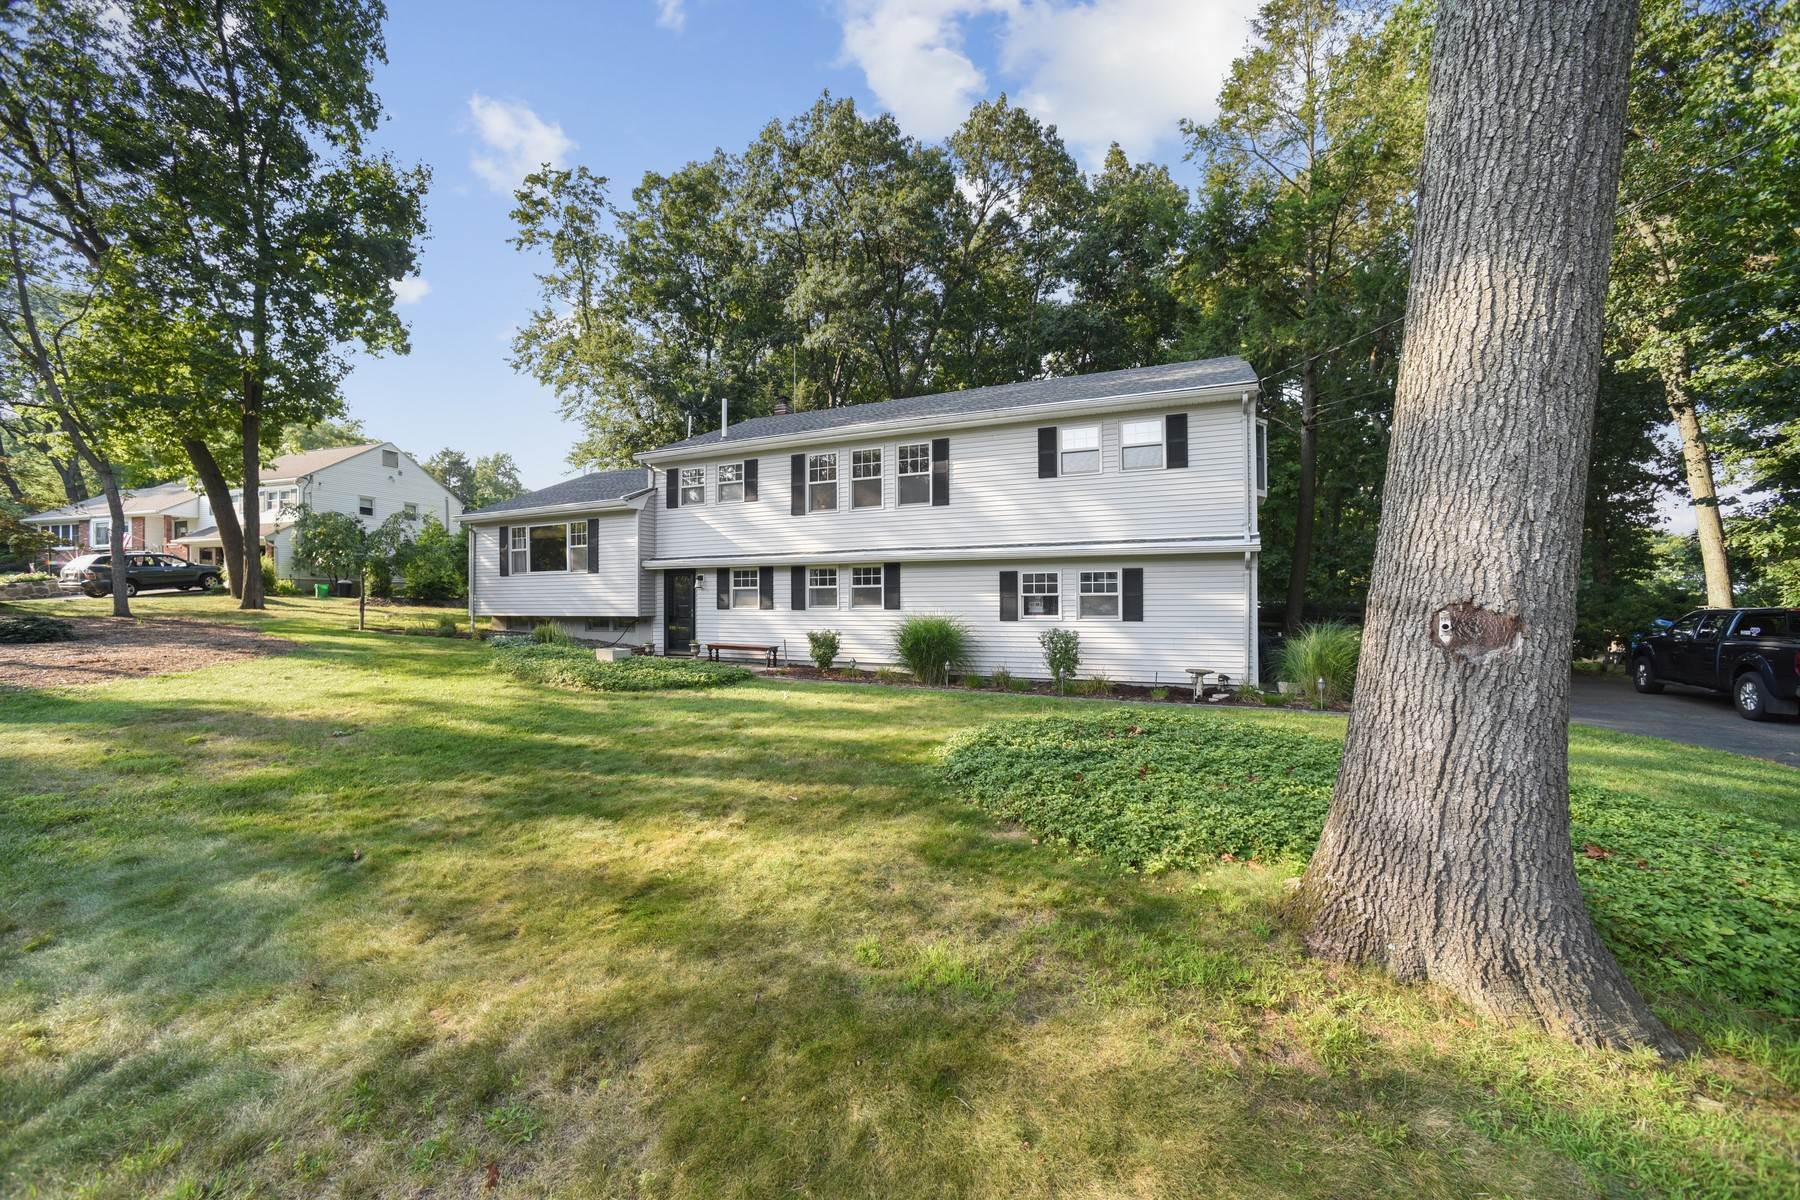 Single Family Homes for Sale at Spacious Split Located on a Cul De Sac 5 Hillside Court East, Morris Plains, New Jersey 07950 United States